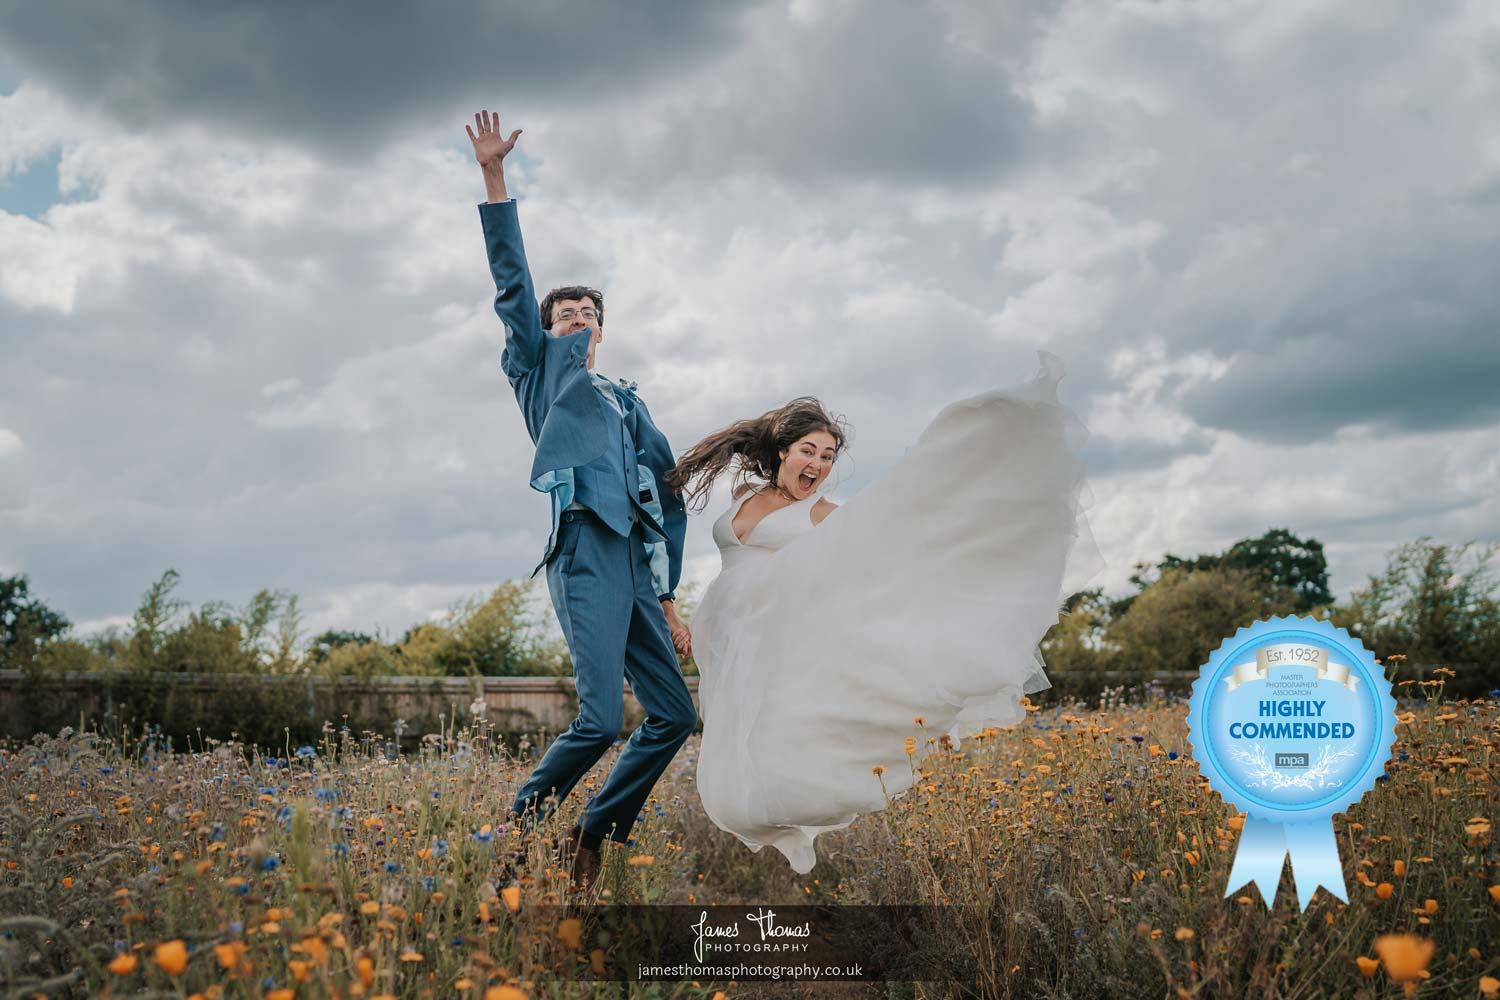 Bride and groom jumping in the air